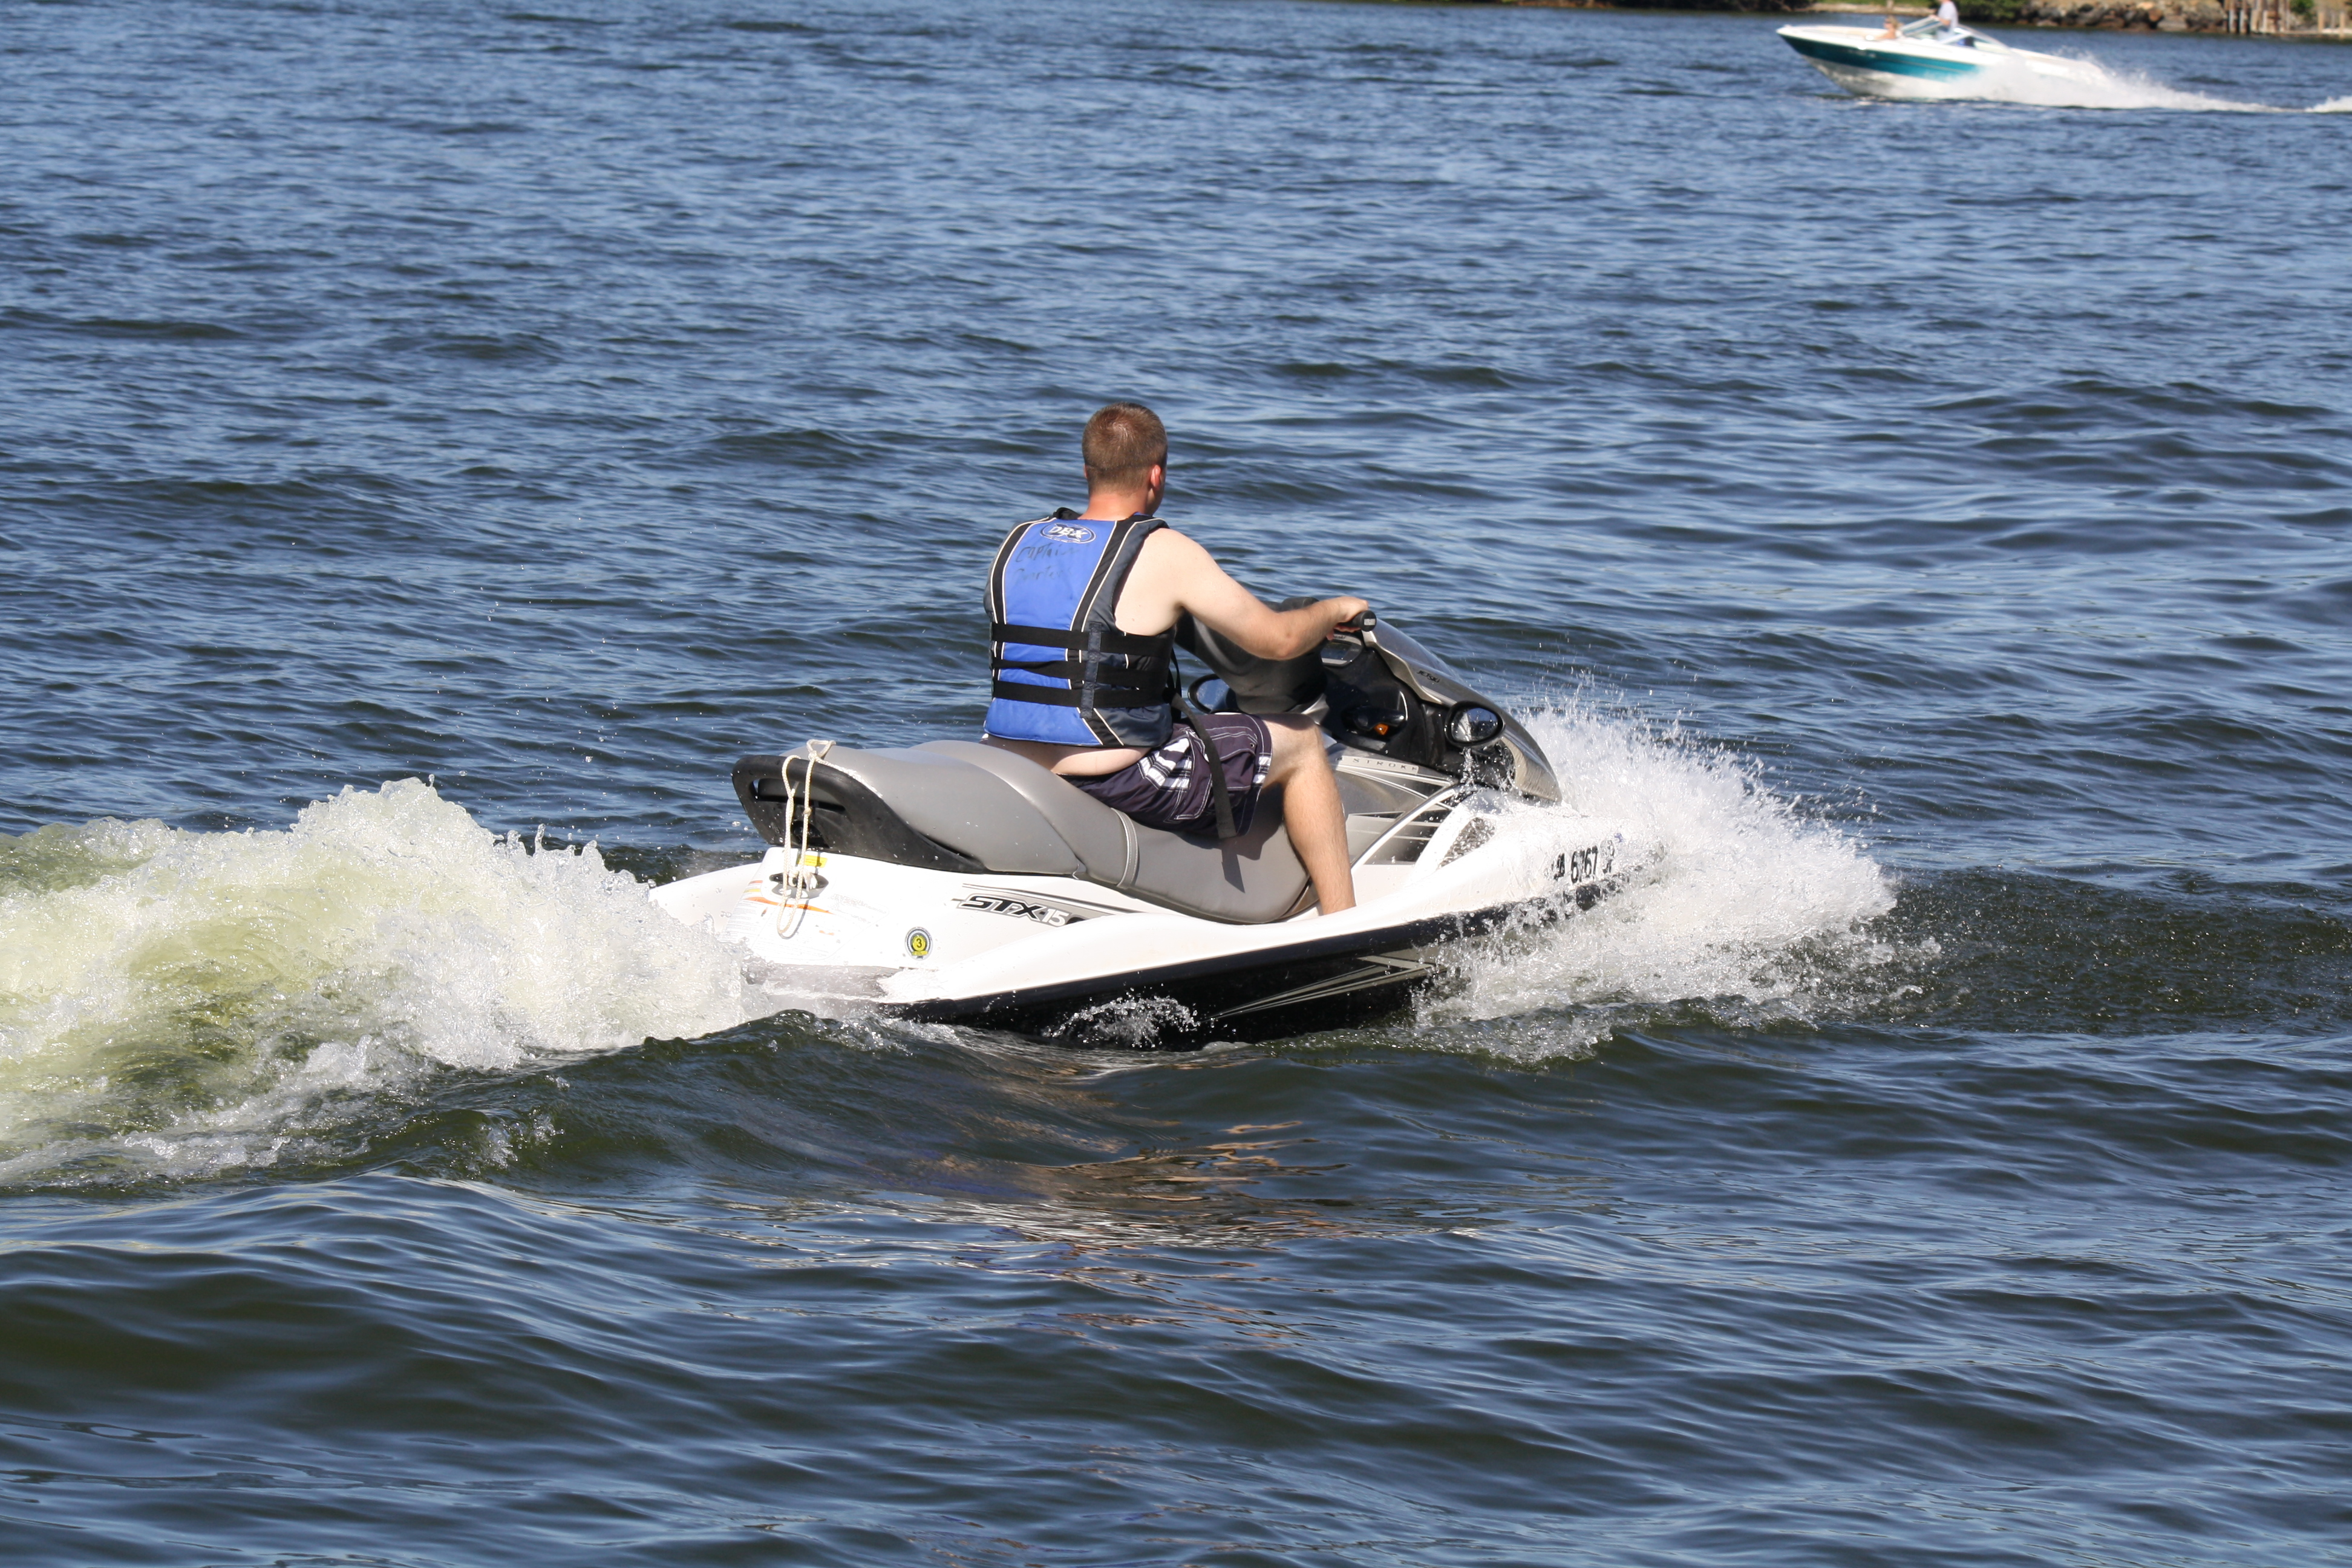 Jet Ski Pontoon http://www.smithmountainlakeboats.com/wordpress/?attachment_id=392